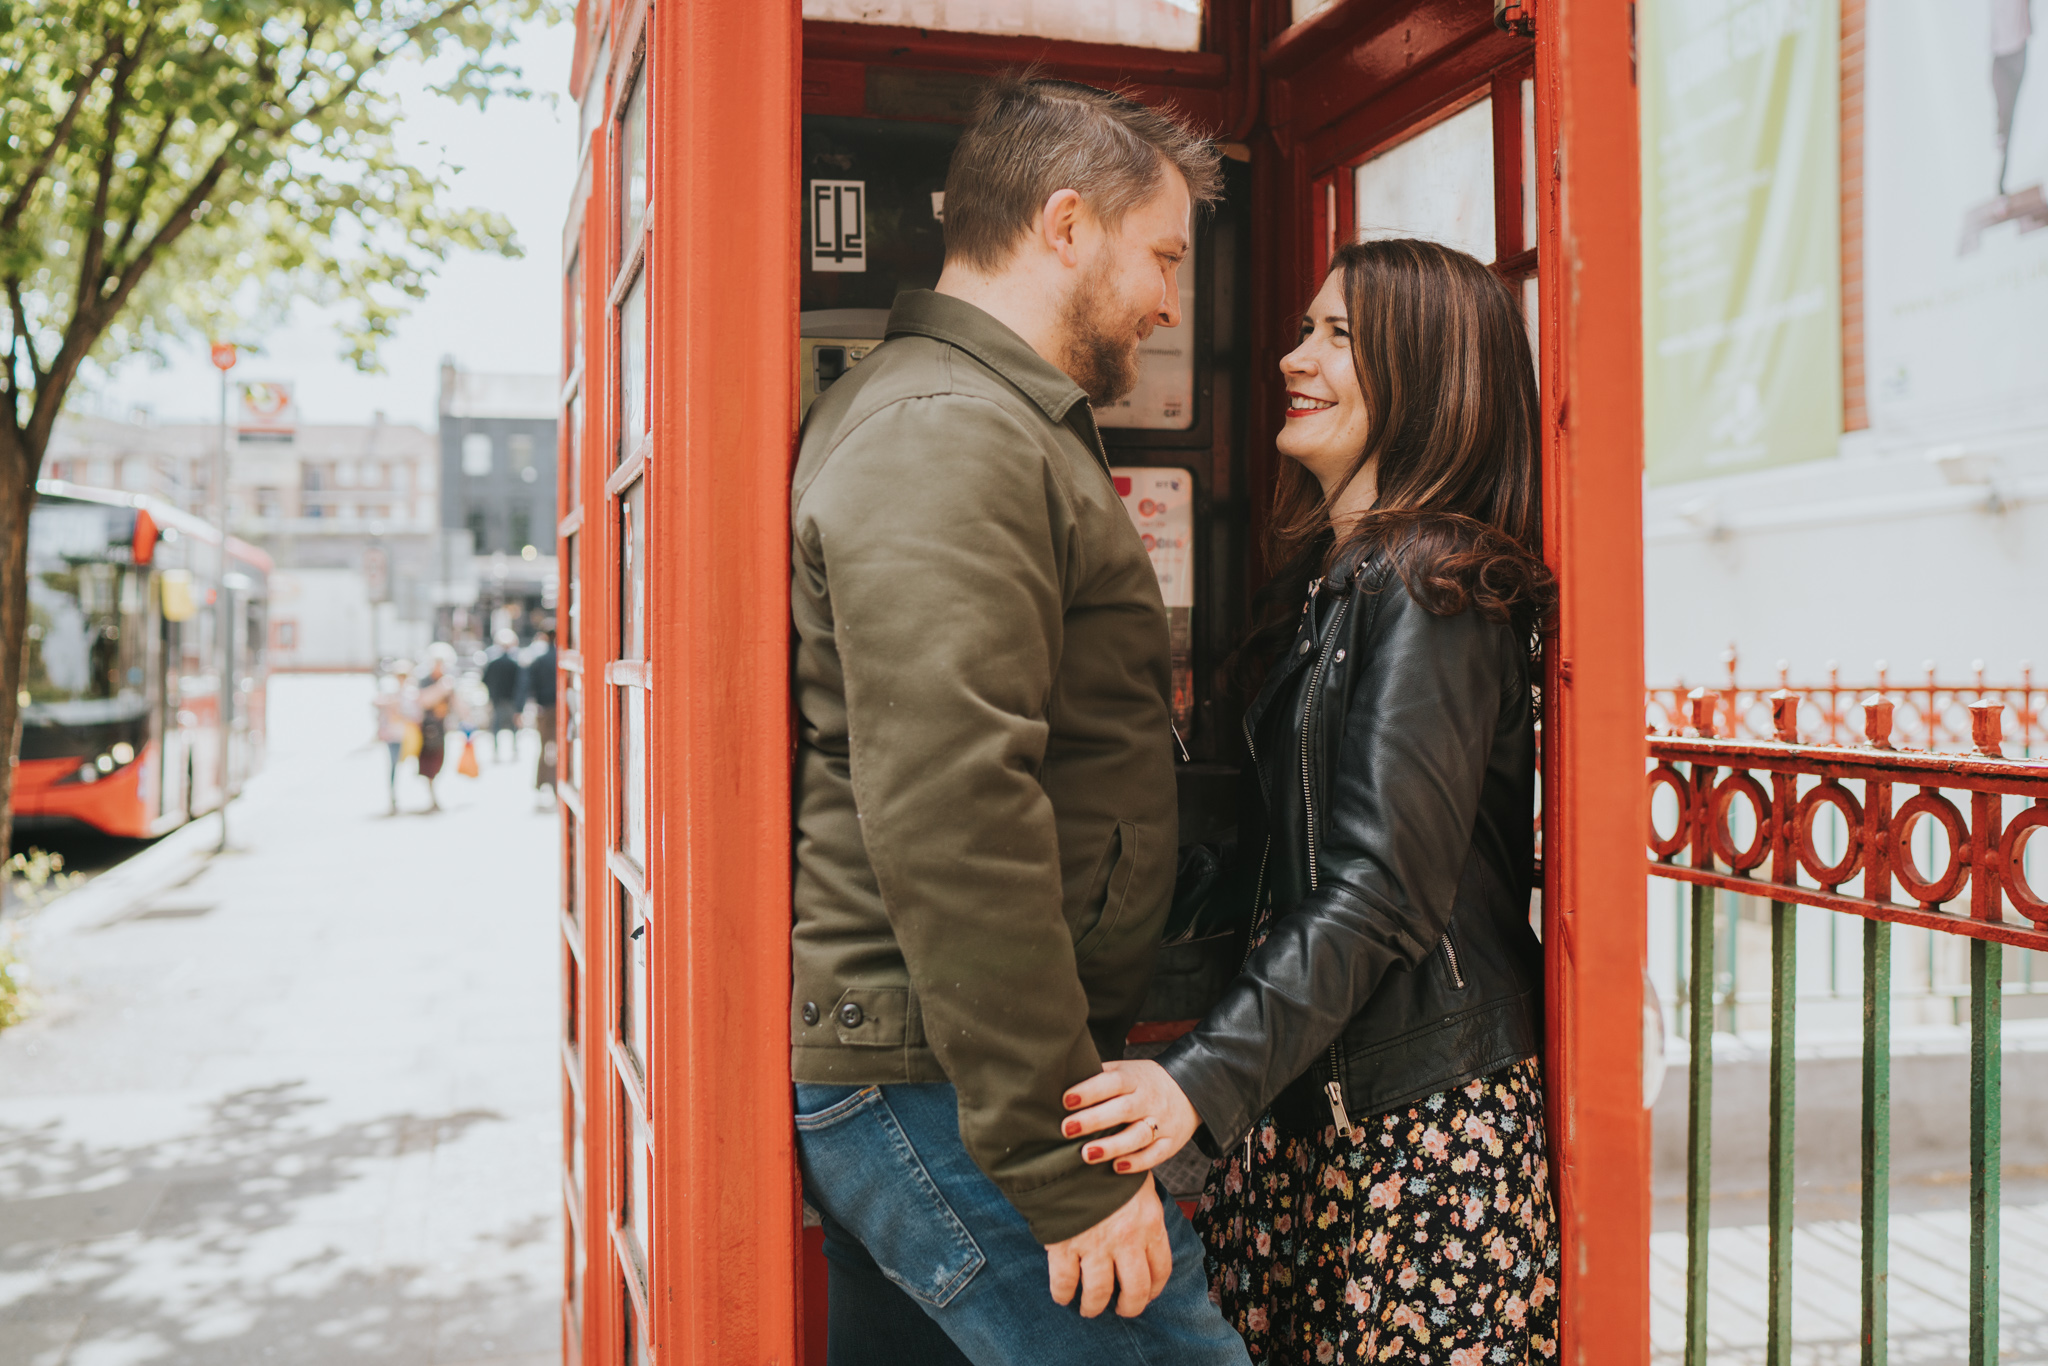 natalie-john-urban-london-engagement-grace-elizabeth-colchester-essex-alternative-wedding-photographer-essex-suffolk-norfolk-devon (62 of 66).jpg